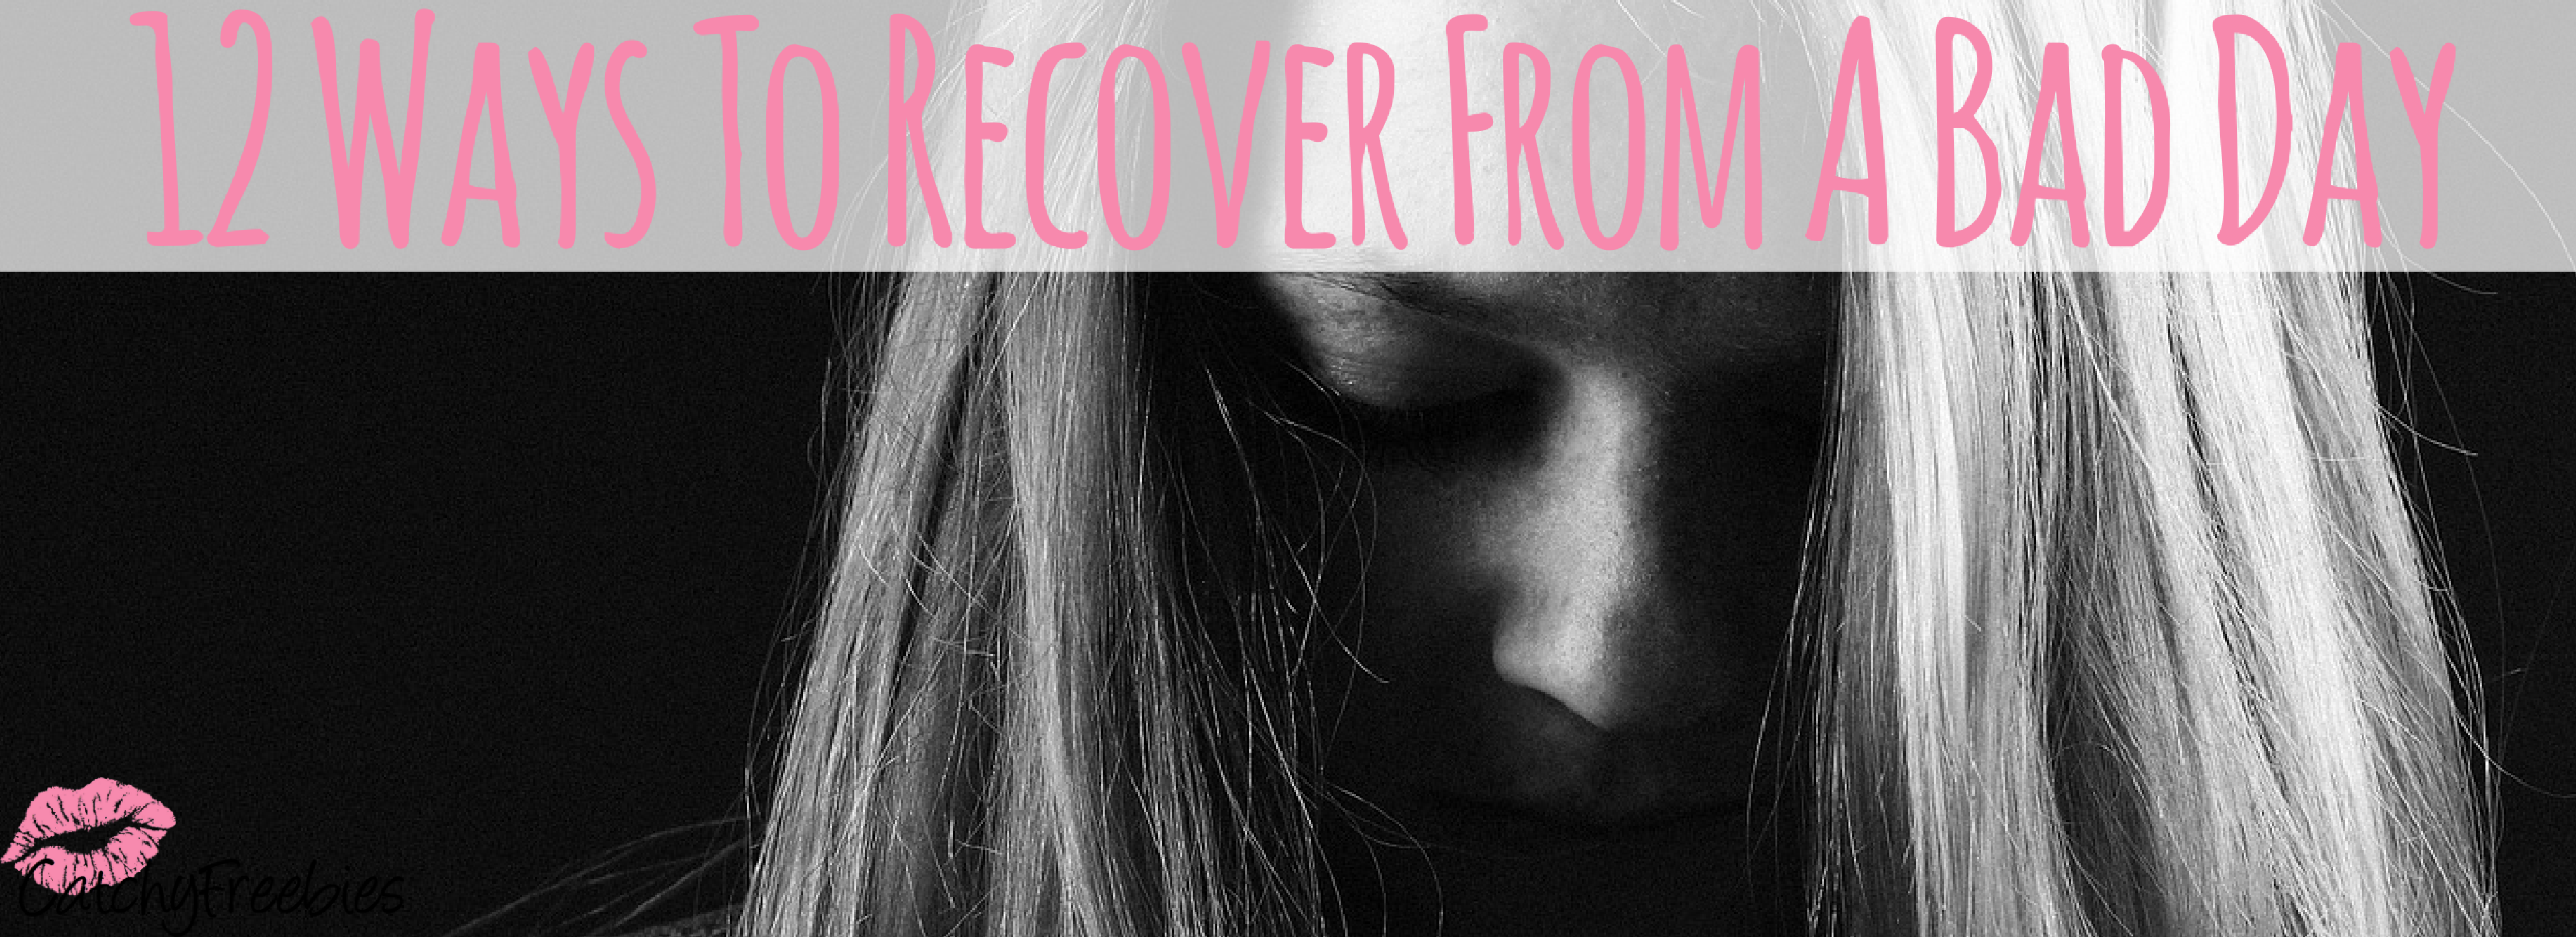 12 Ways To Recover From A Bad Day